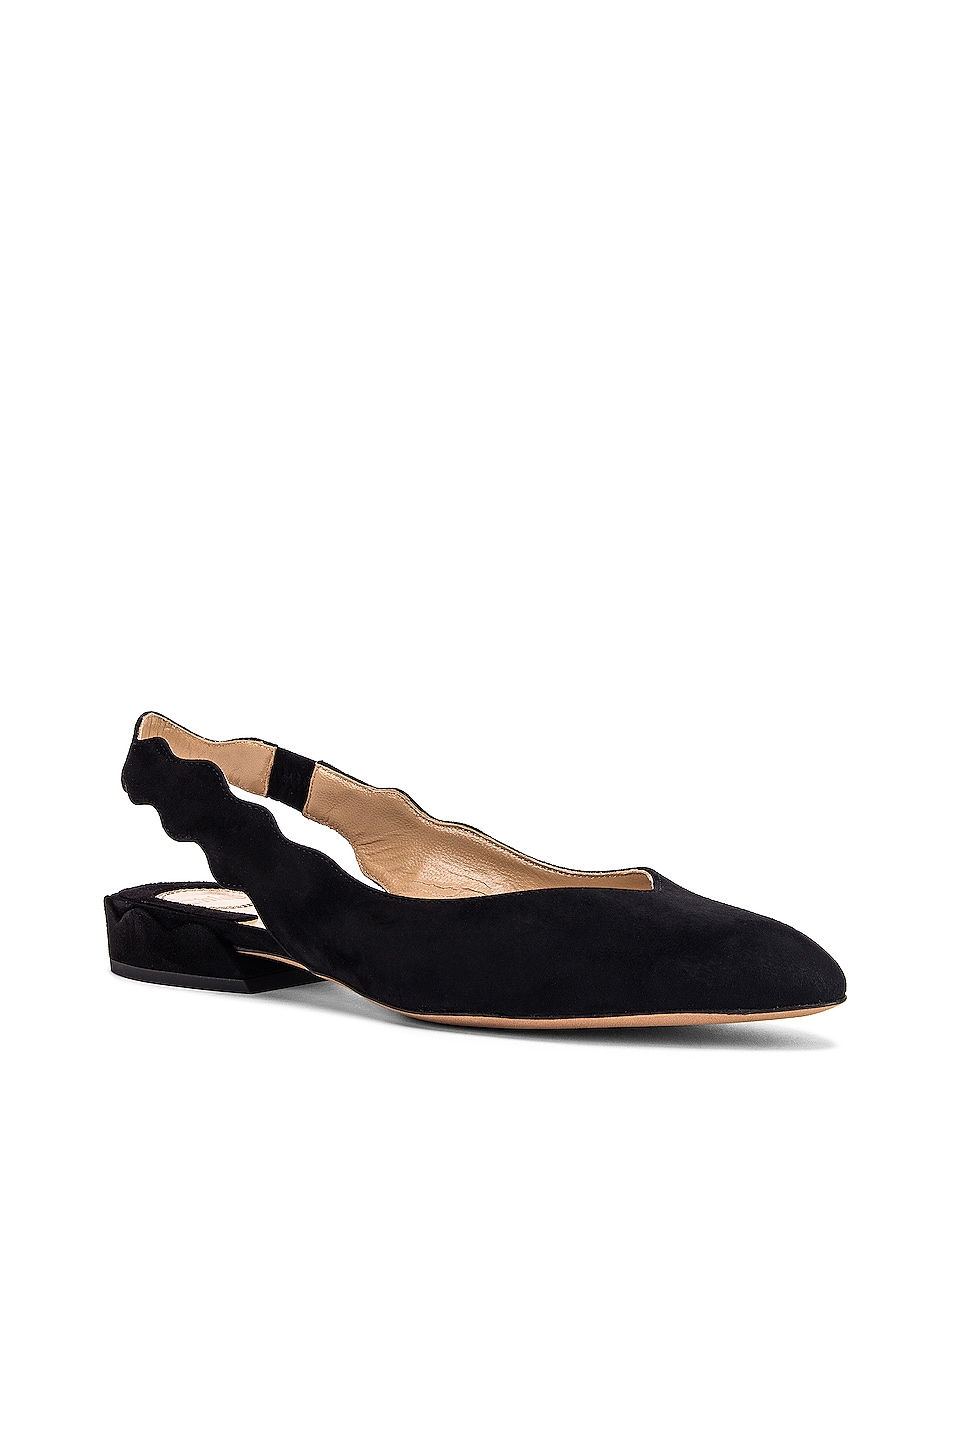 Image 2 of Chloe Laurena Slingback Flats in Black